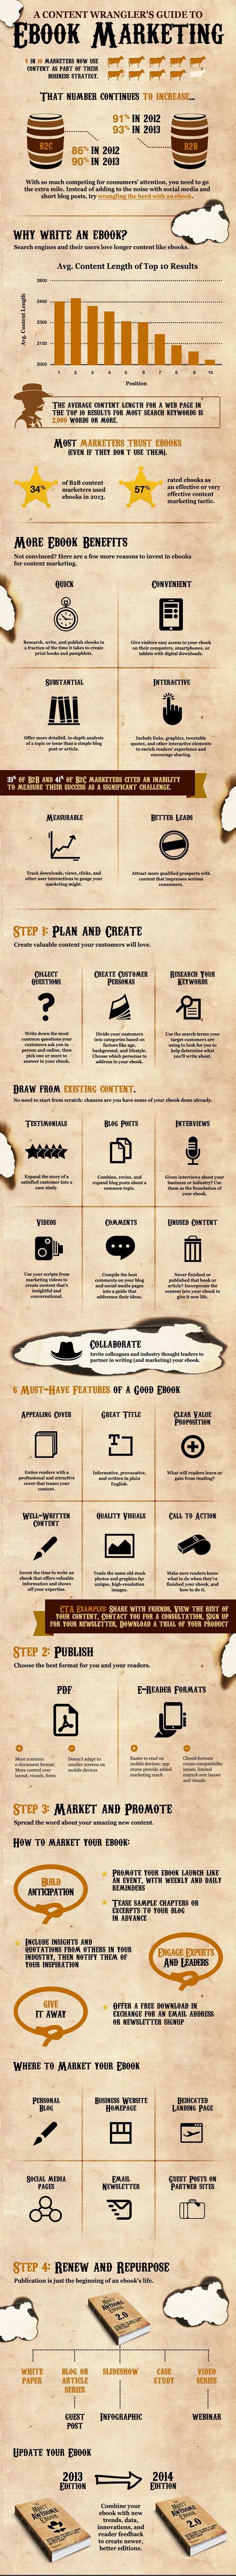 content-wranglers-guide-to-ebook-marketing